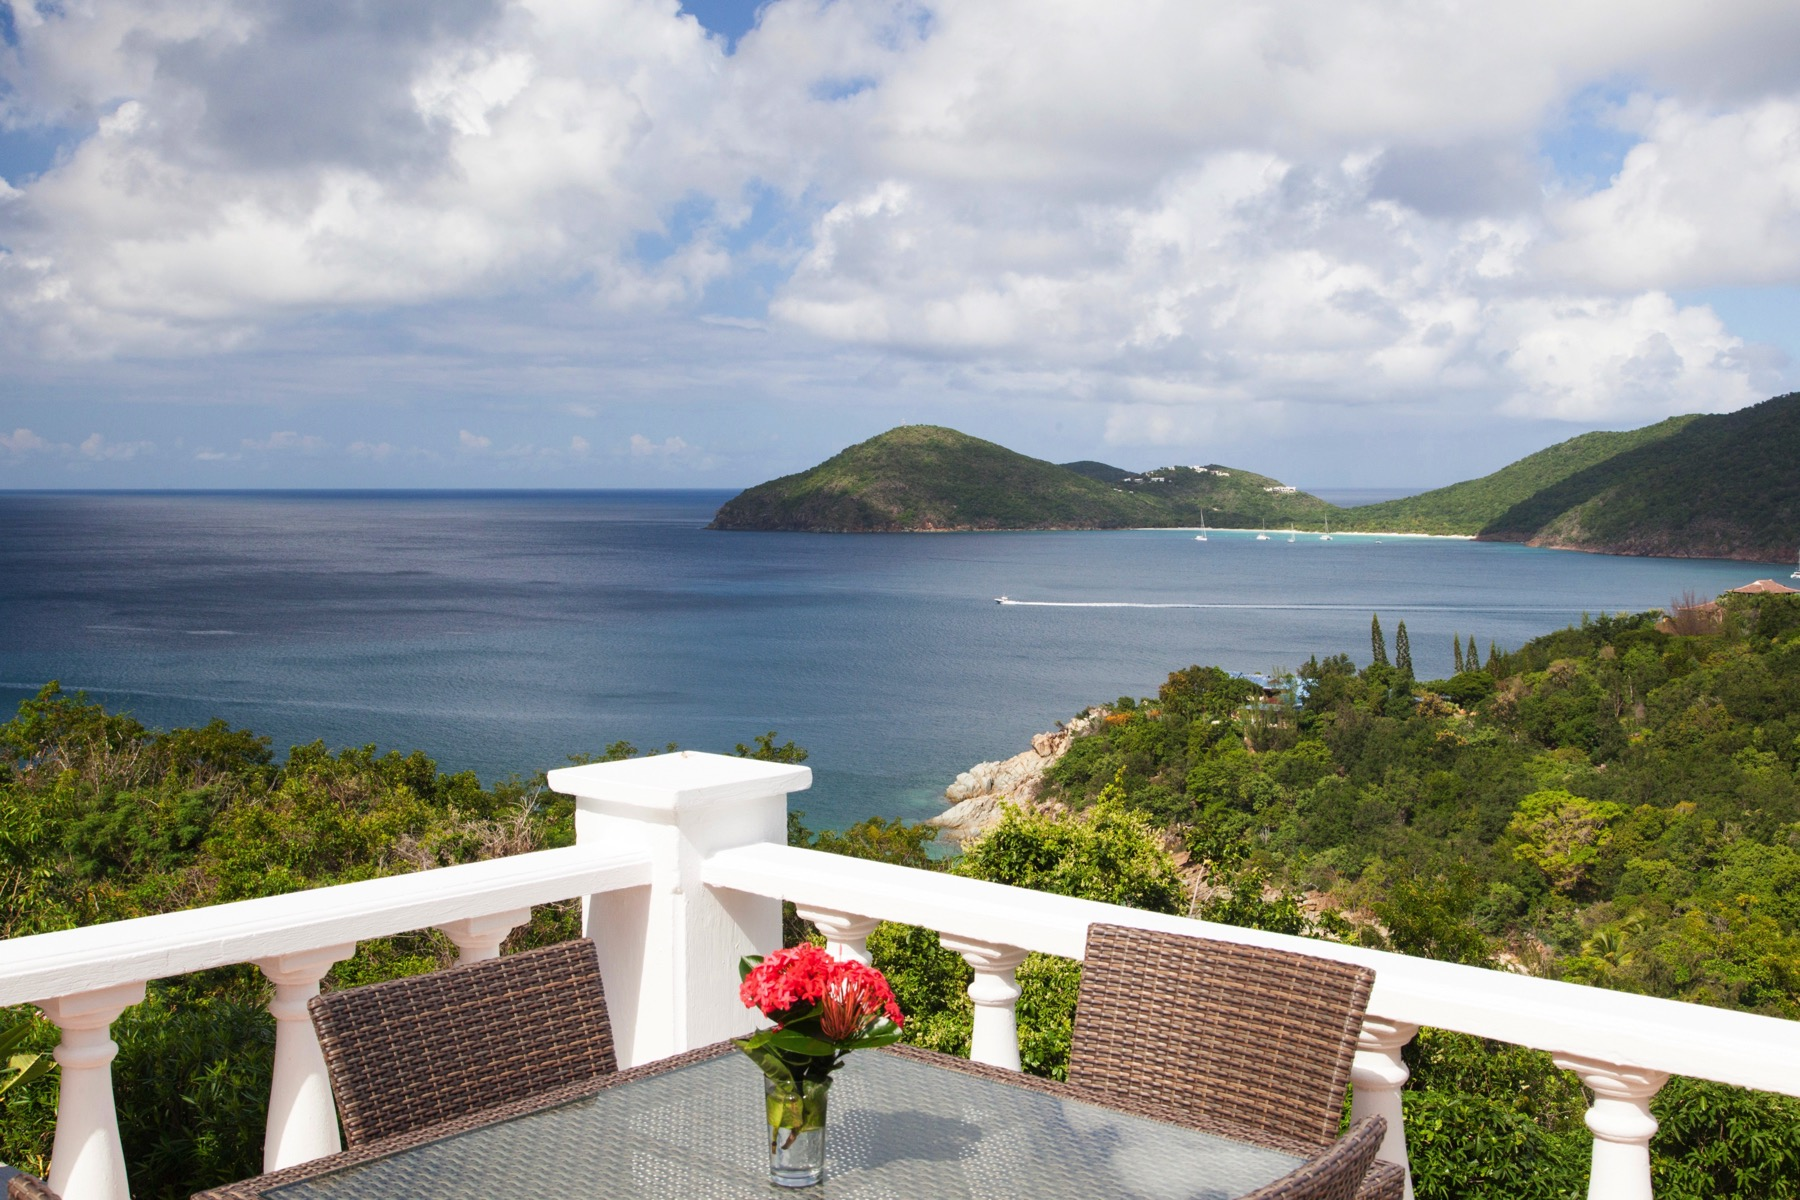 Single Family Home for Sale at Elysium Little Bay, Tortola British Virgin Islands